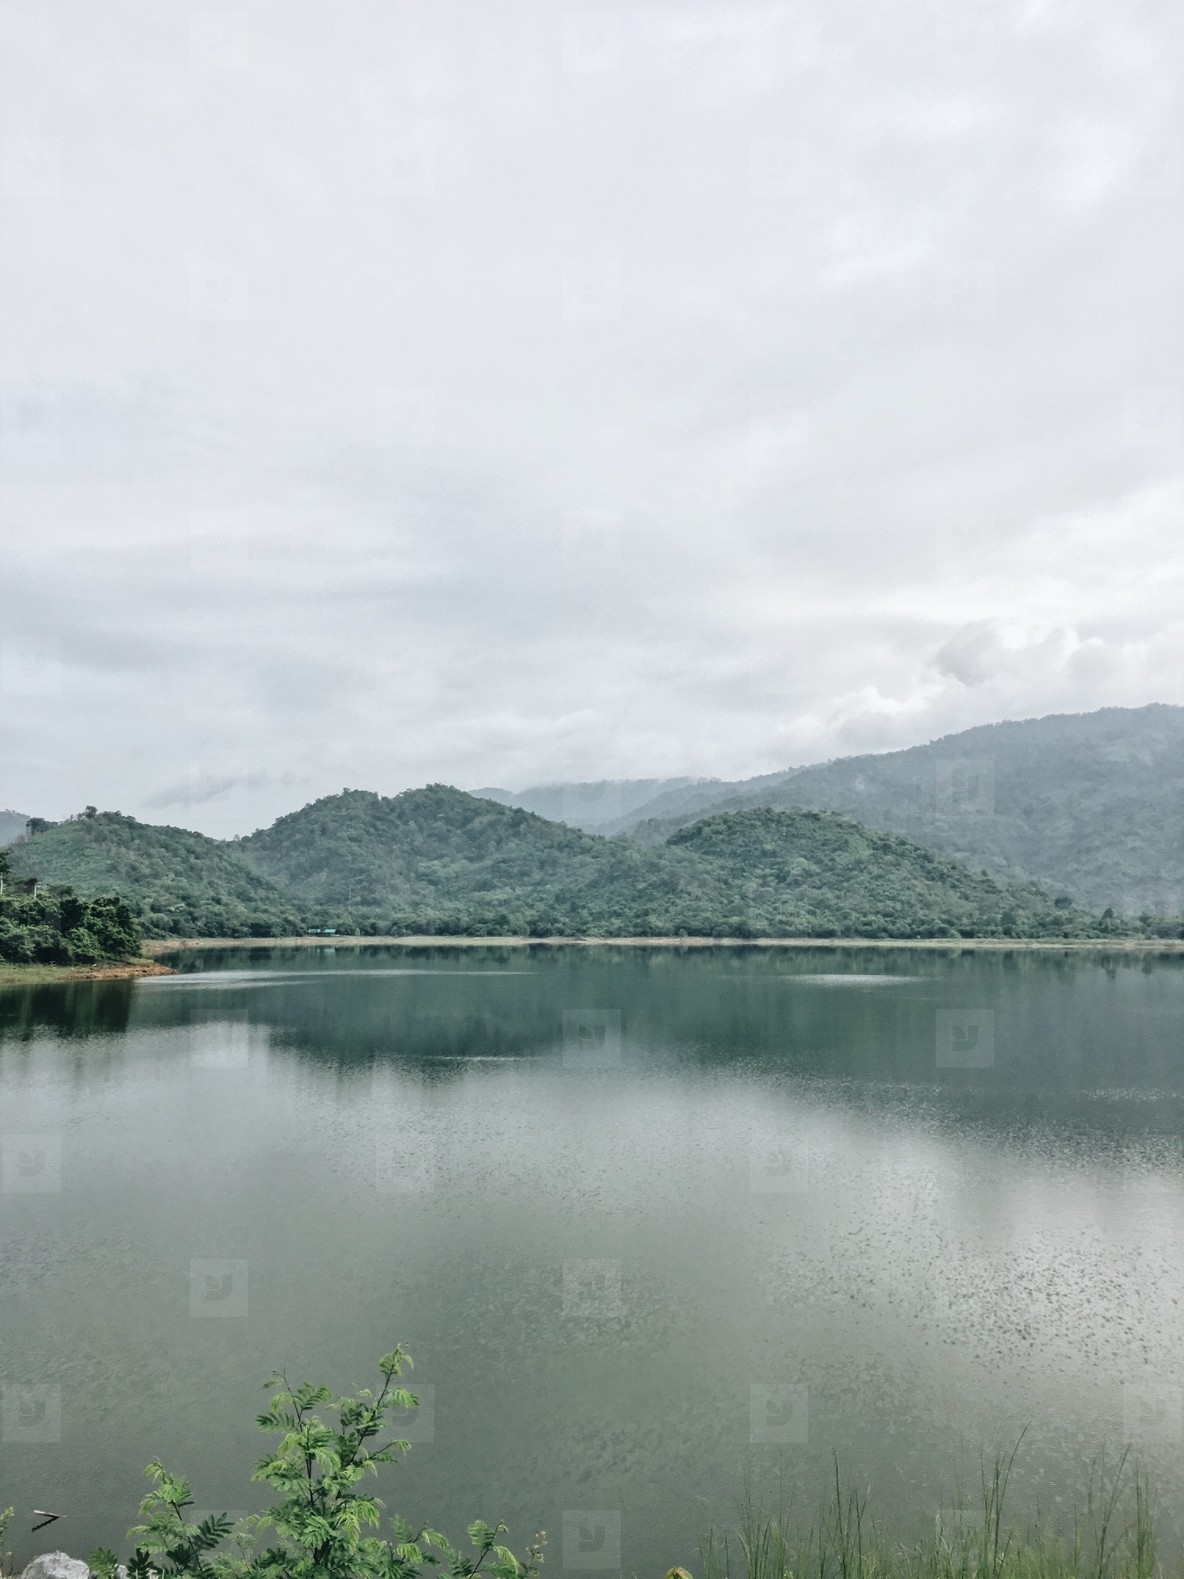 View of Khun Dan Prakarnchon Dam